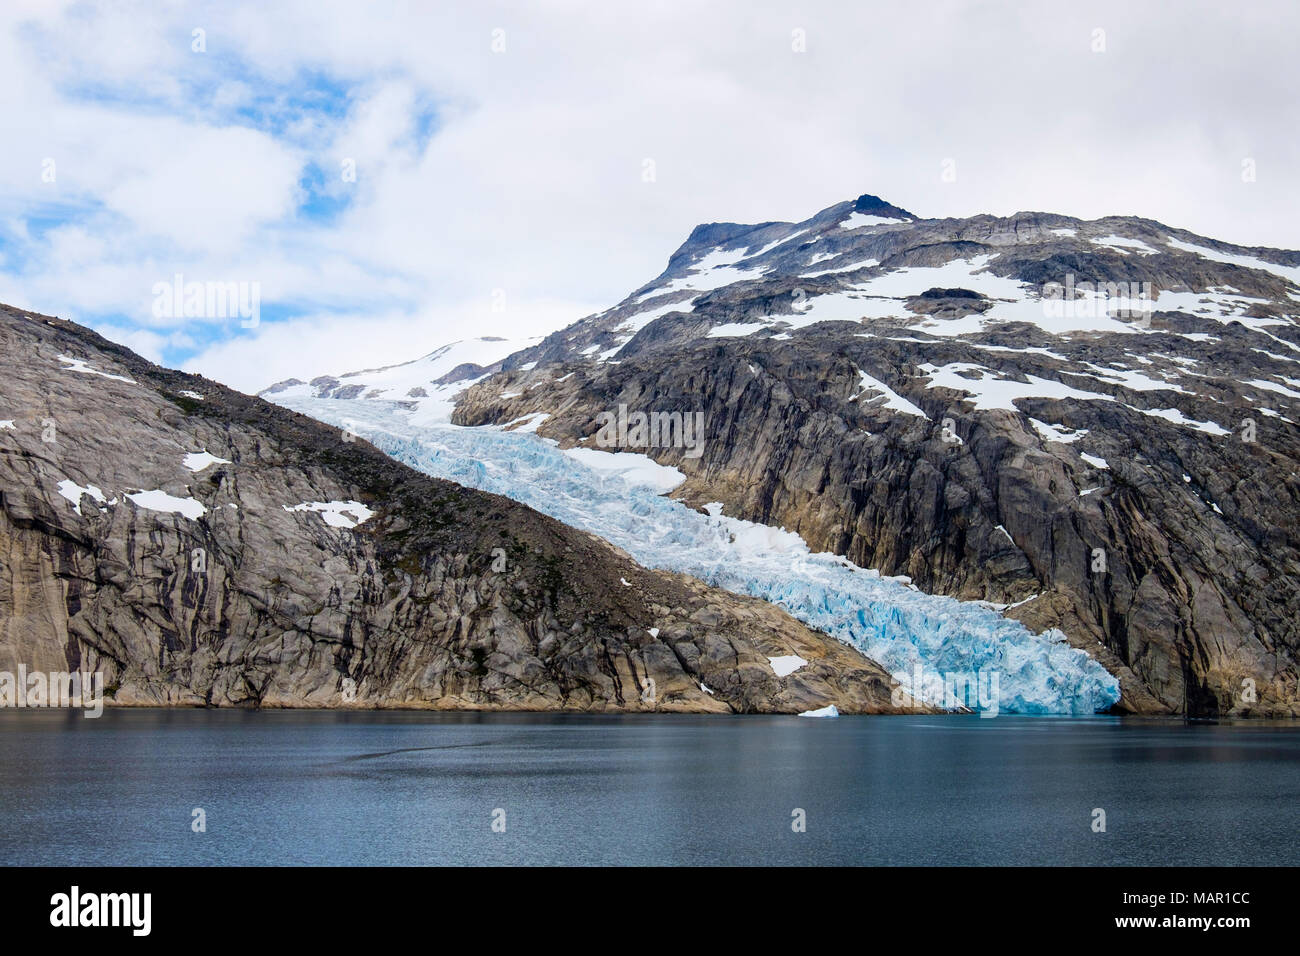 Head of a glacier calving into Prince Christian Sound (Prins Christians Sund) in summer, Kujalleq, Greenland, Polar Regions - Stock Image